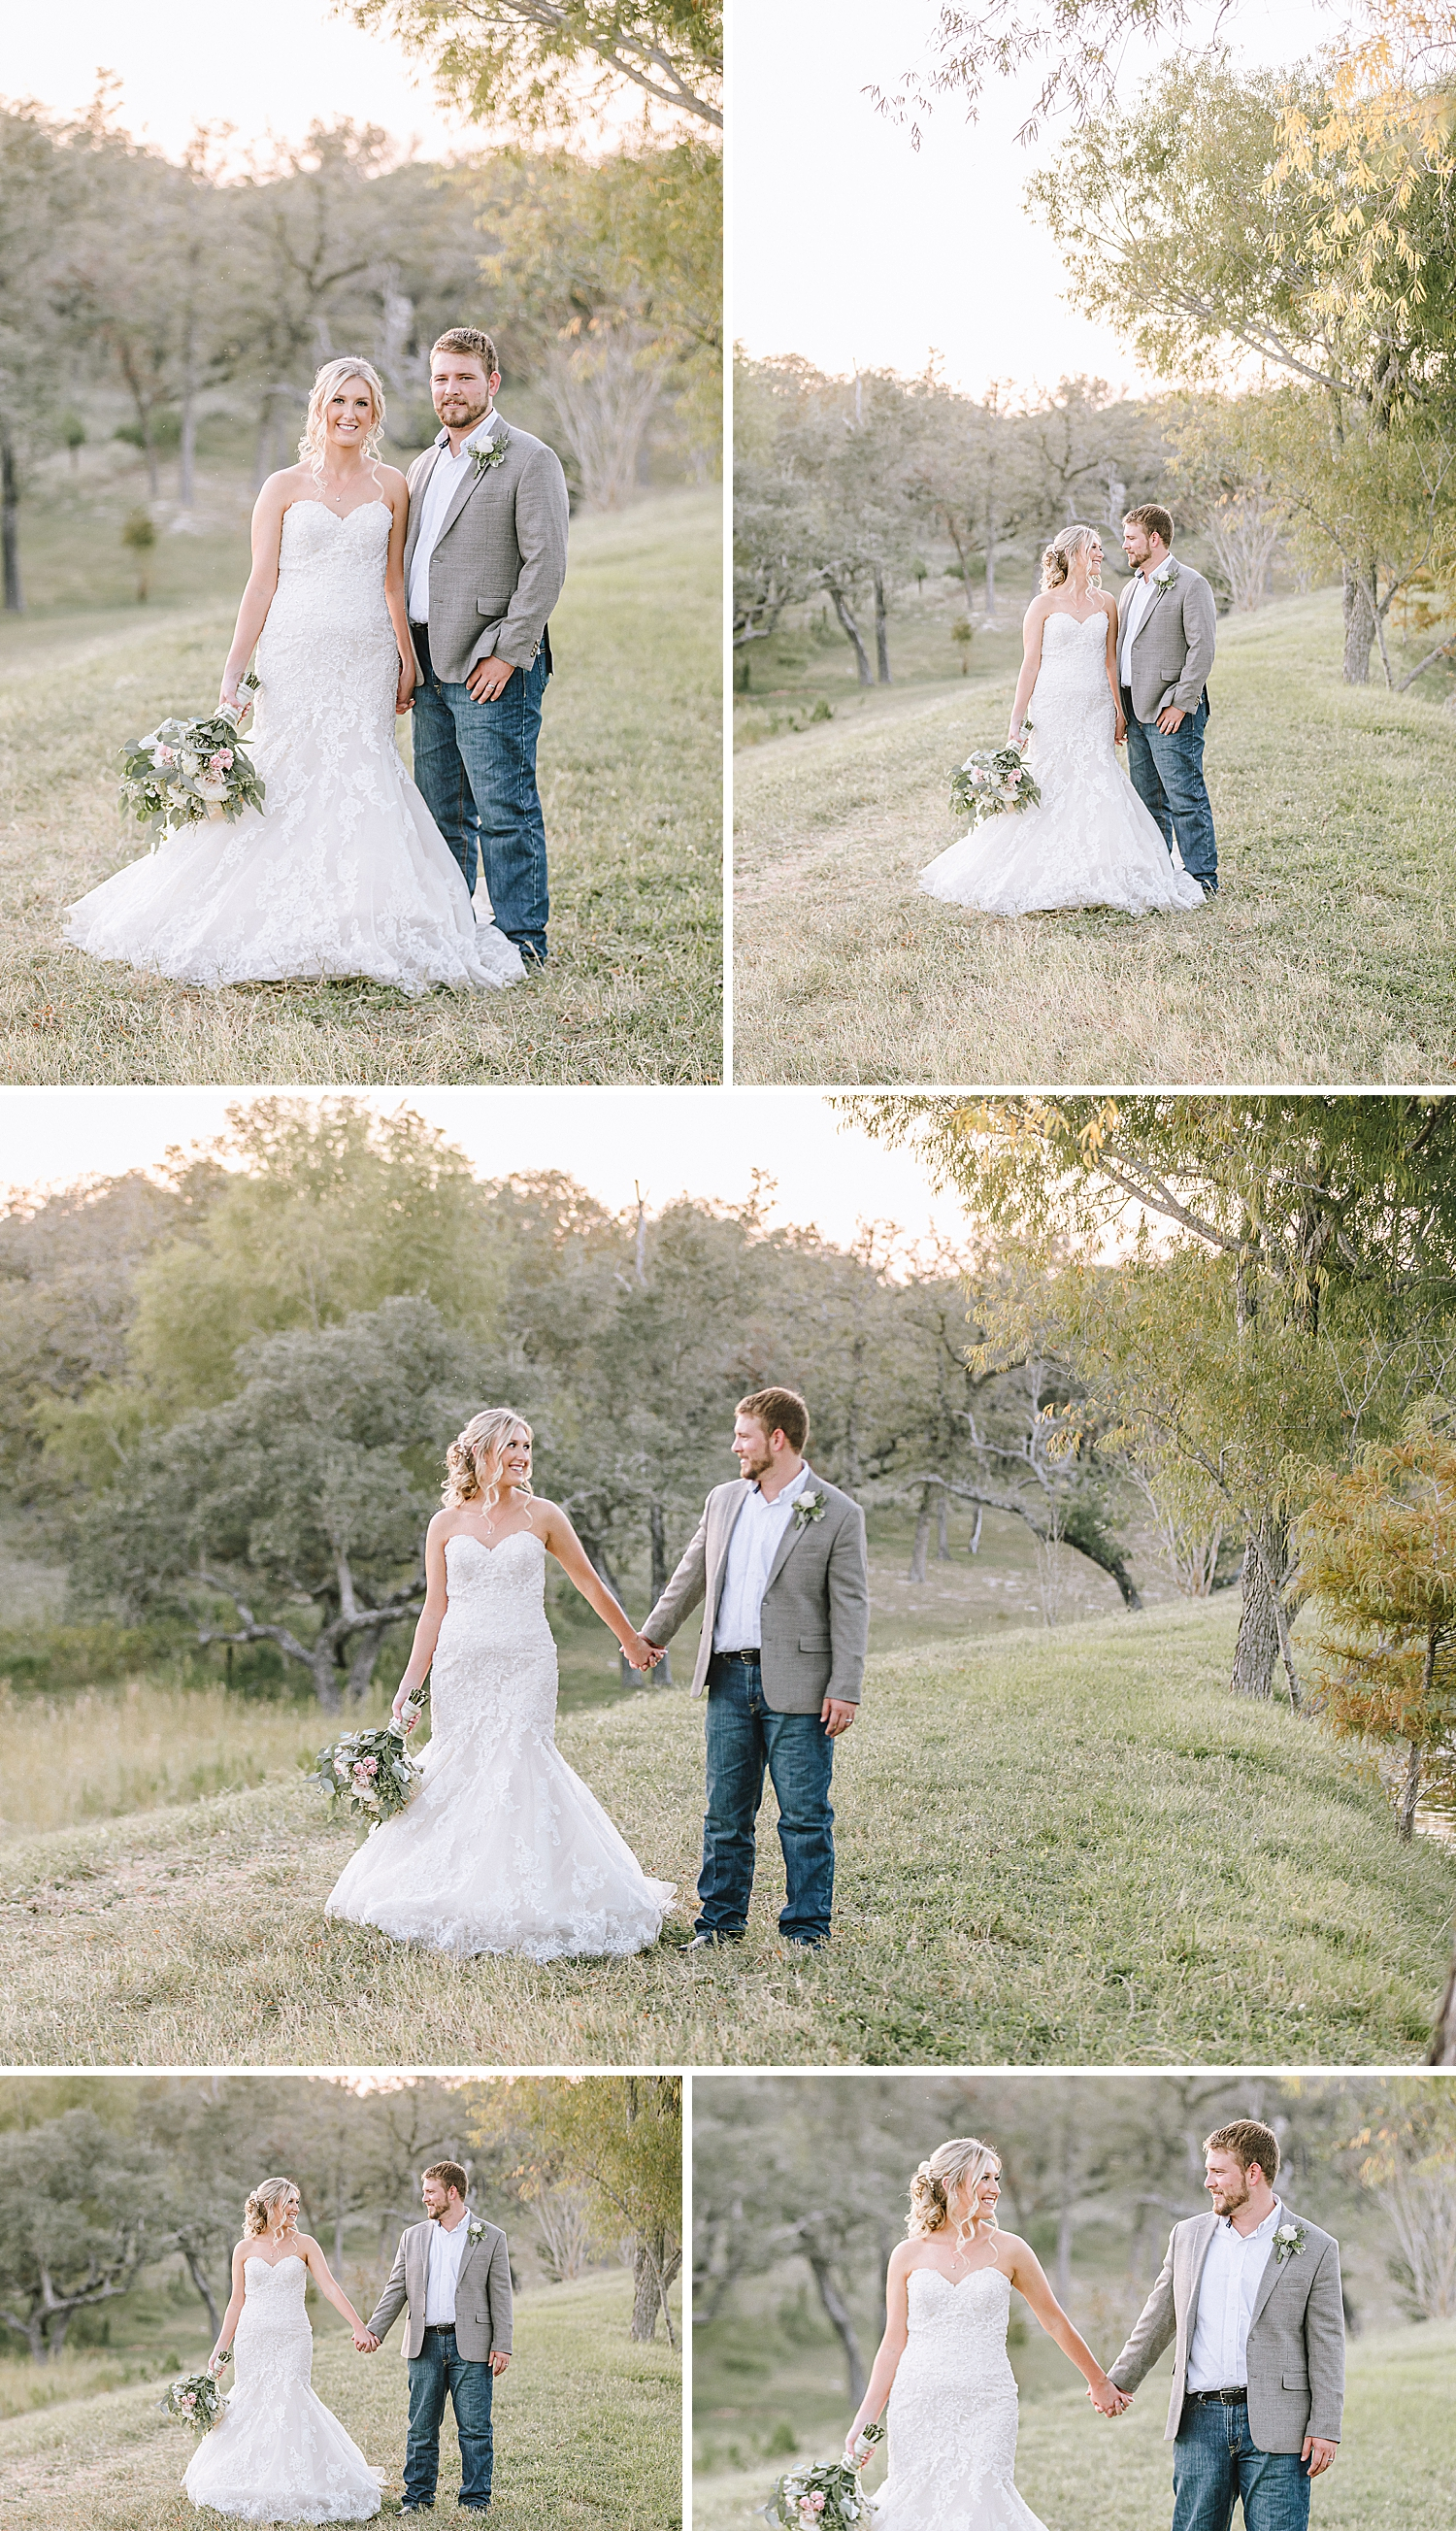 Rackler-Ranch-LaVernia-Texas-Wedding-Carly-Barton-Photography_0099.jpg